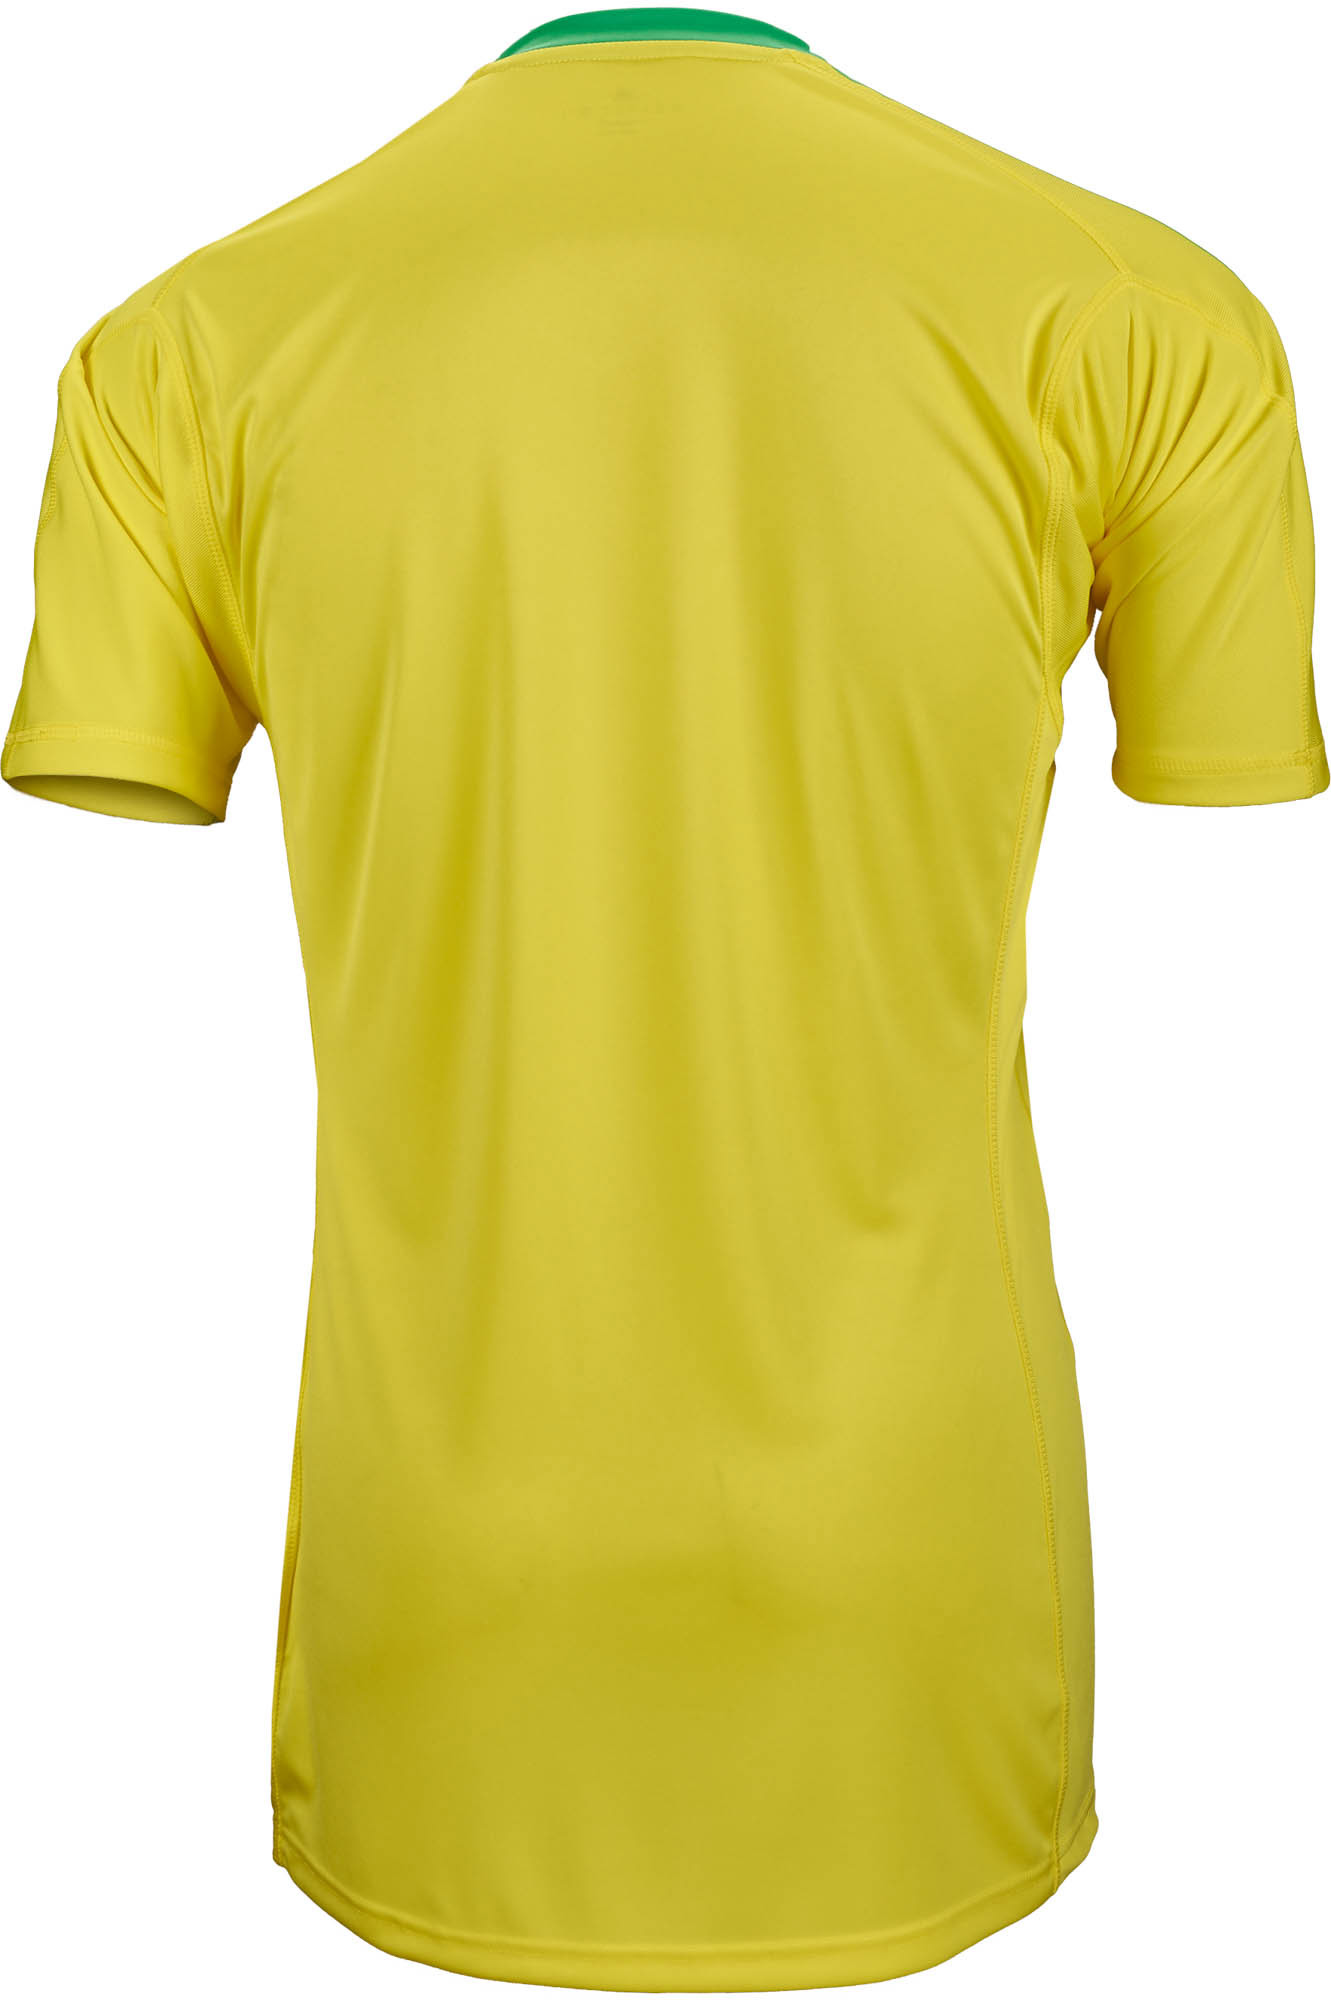 eb25887cc adidas Revigo 17 S S Goalkeeper Jersey – Bright Yellow Energy Green